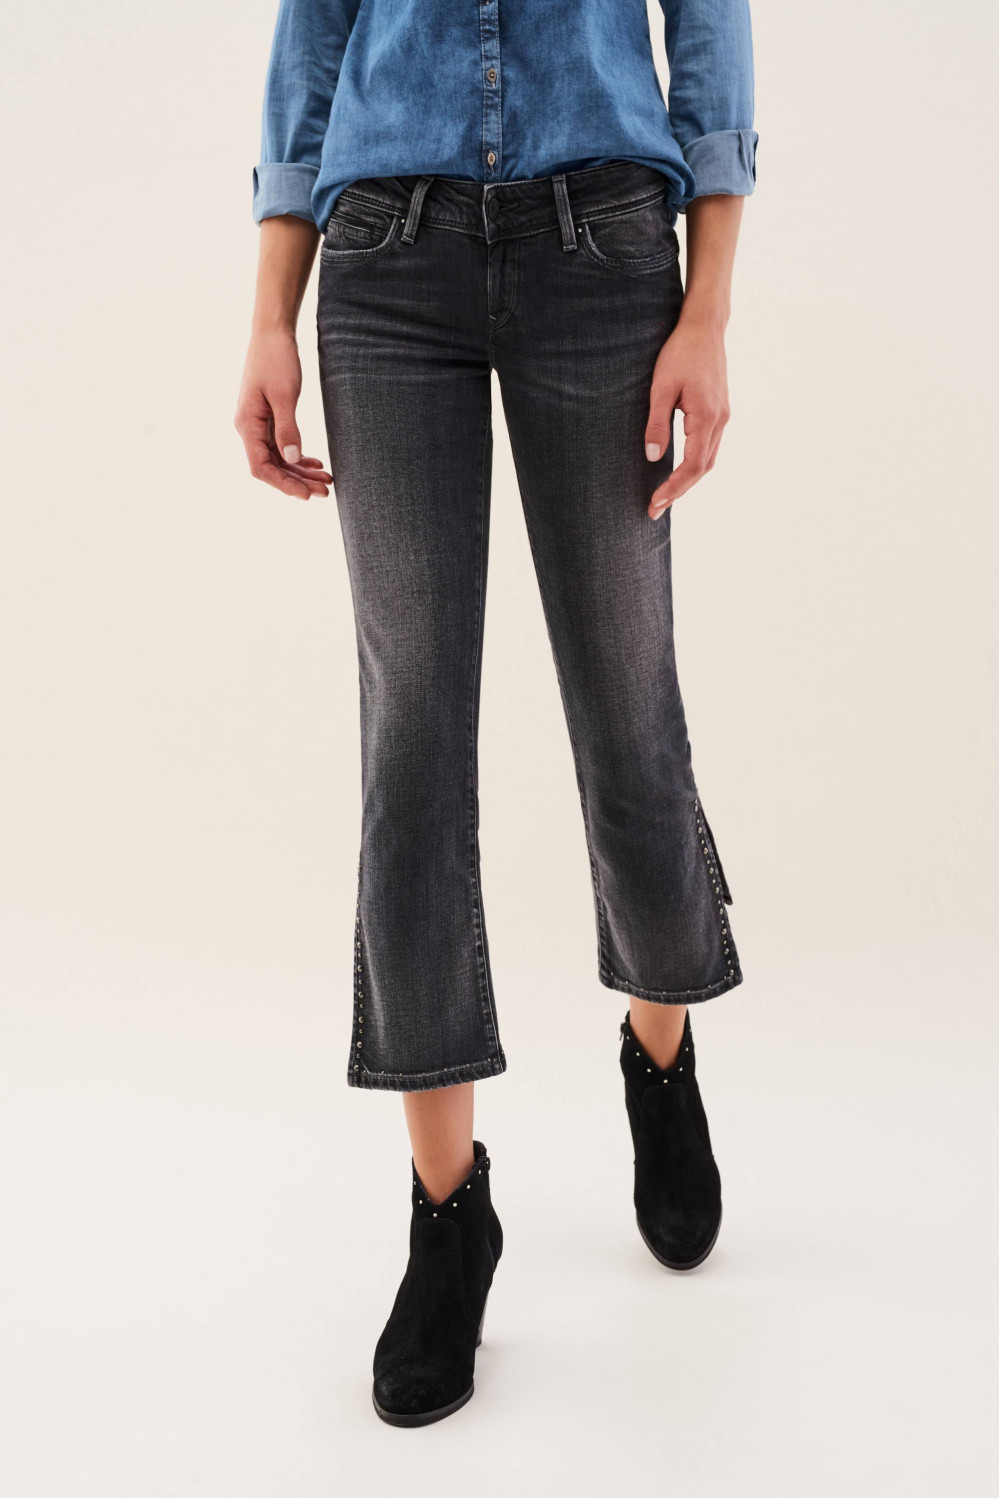 Cropped flare Shape Up jeans